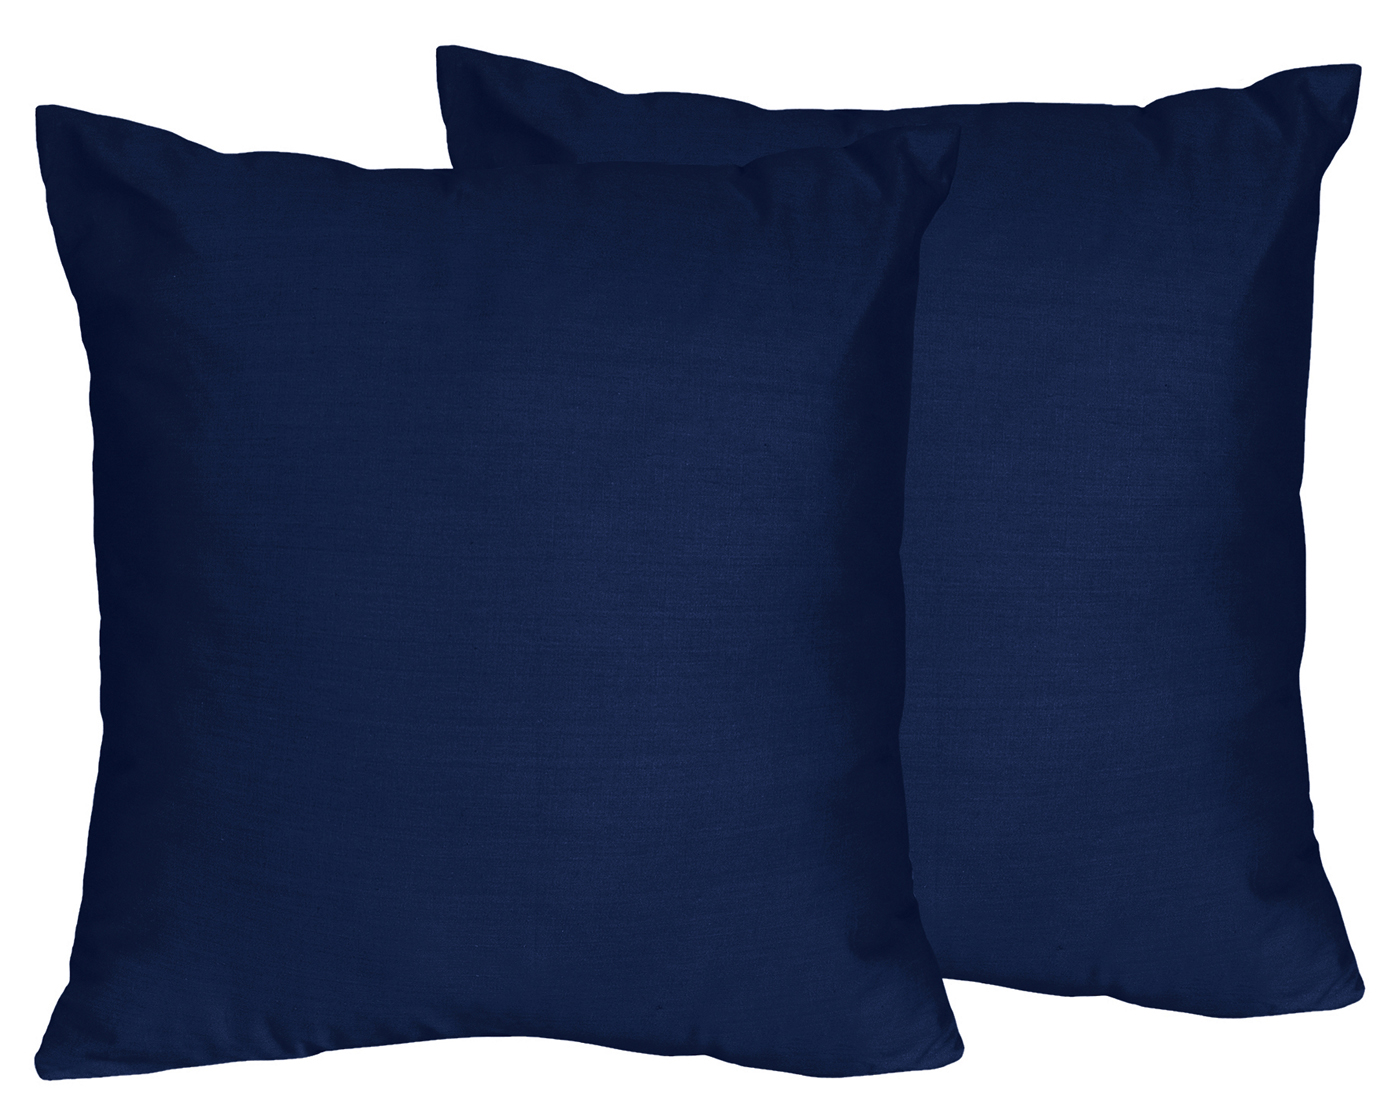 Navy Blue Decorative Bed Pillows : Set Of 2 Navy Blue Decorative Accent Throw Pillow Sweet Jojo Stripe Collection eBay